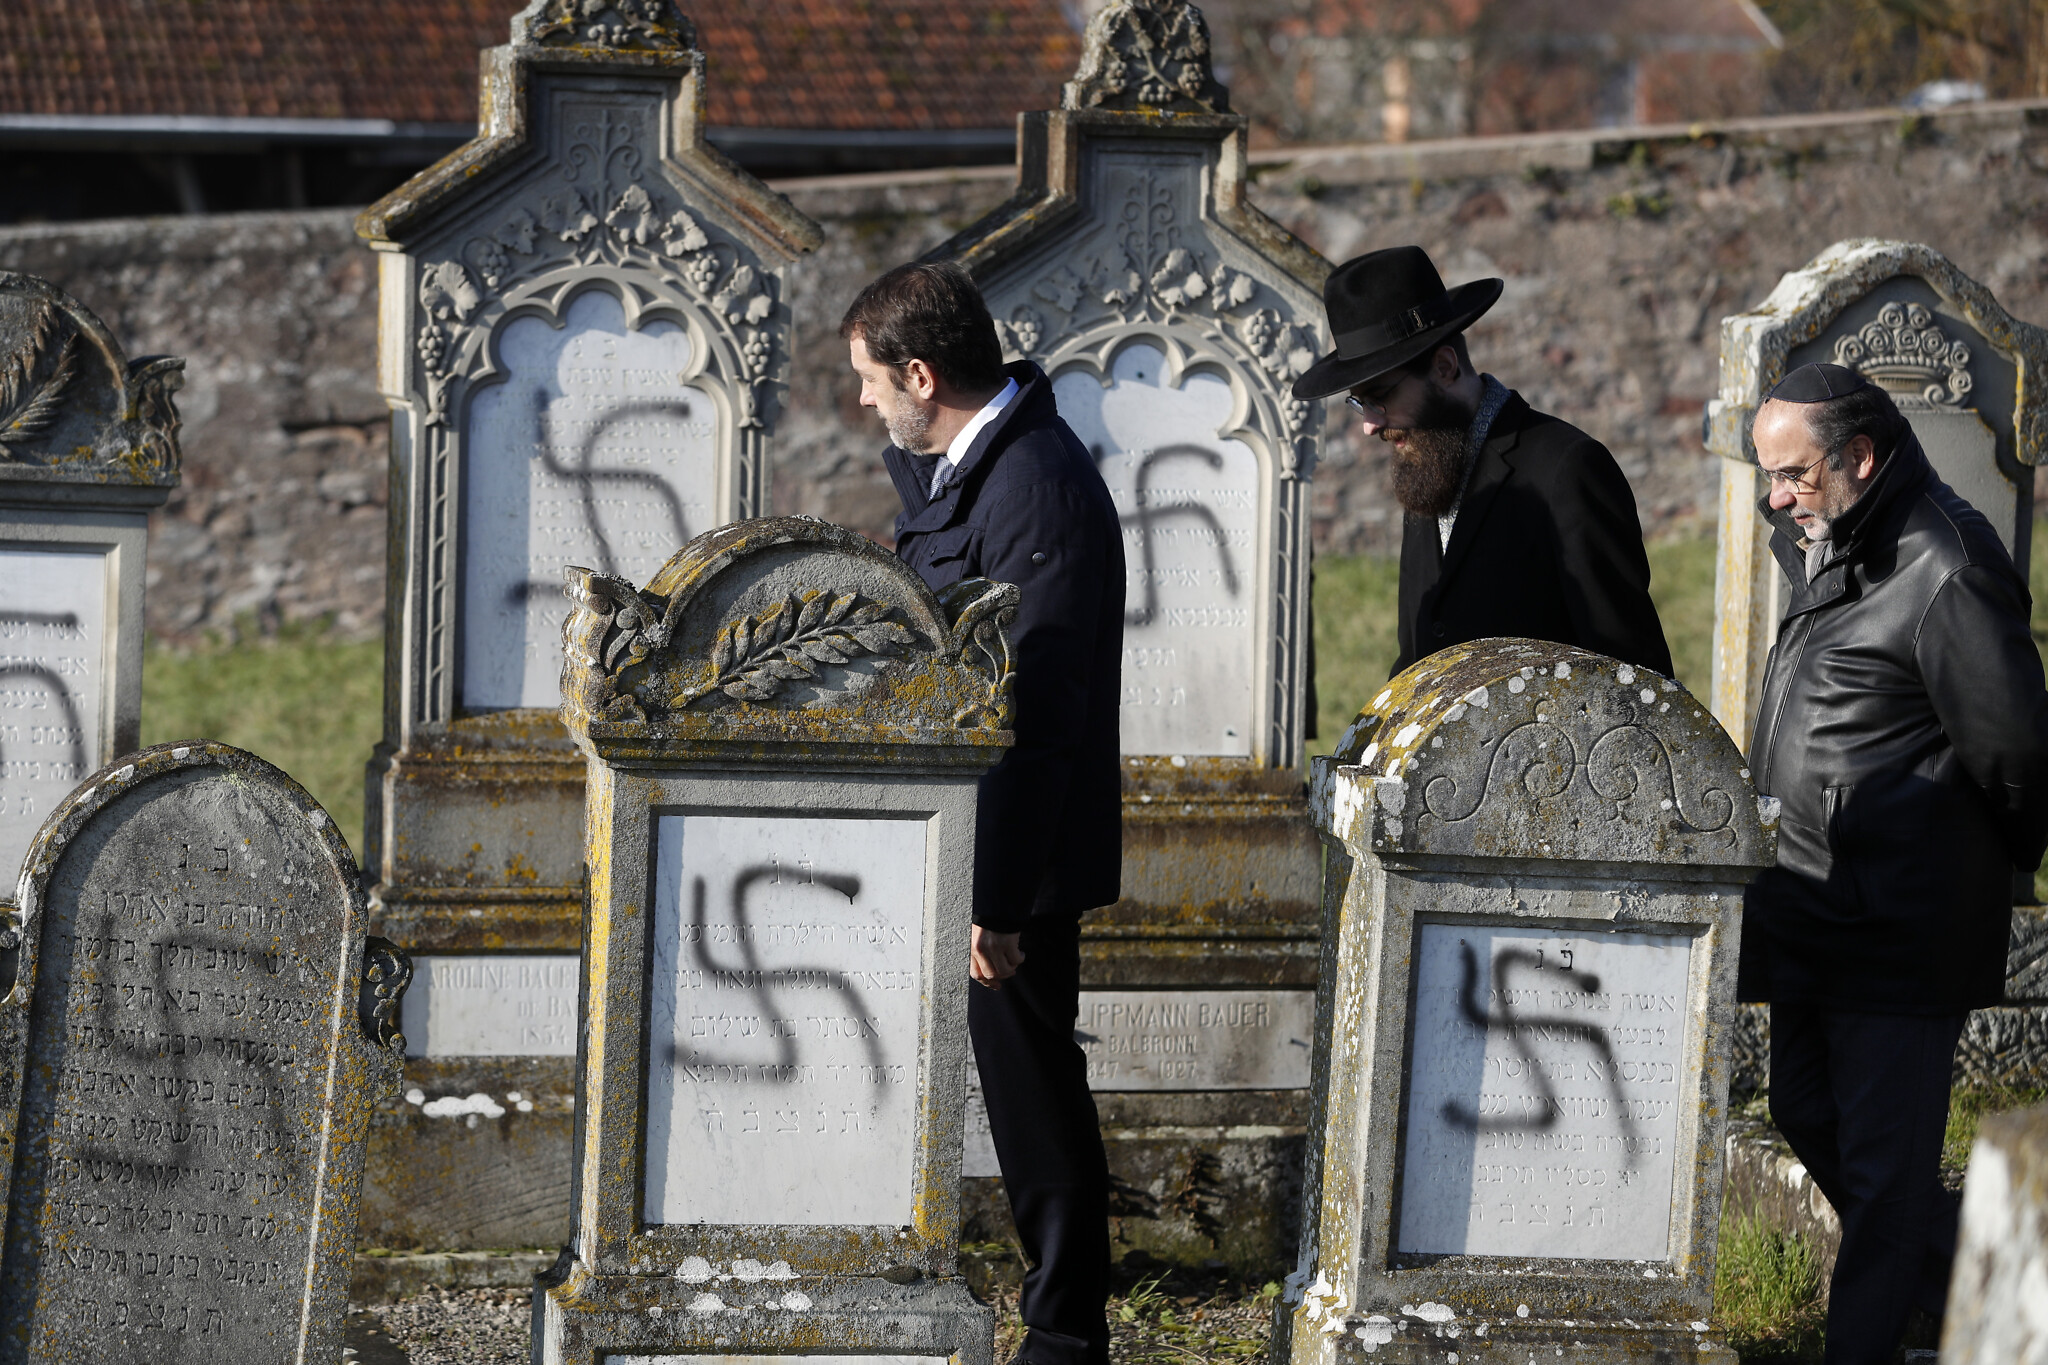 More than 100 graves vandalized with swastikas at Jewish cemetery in France